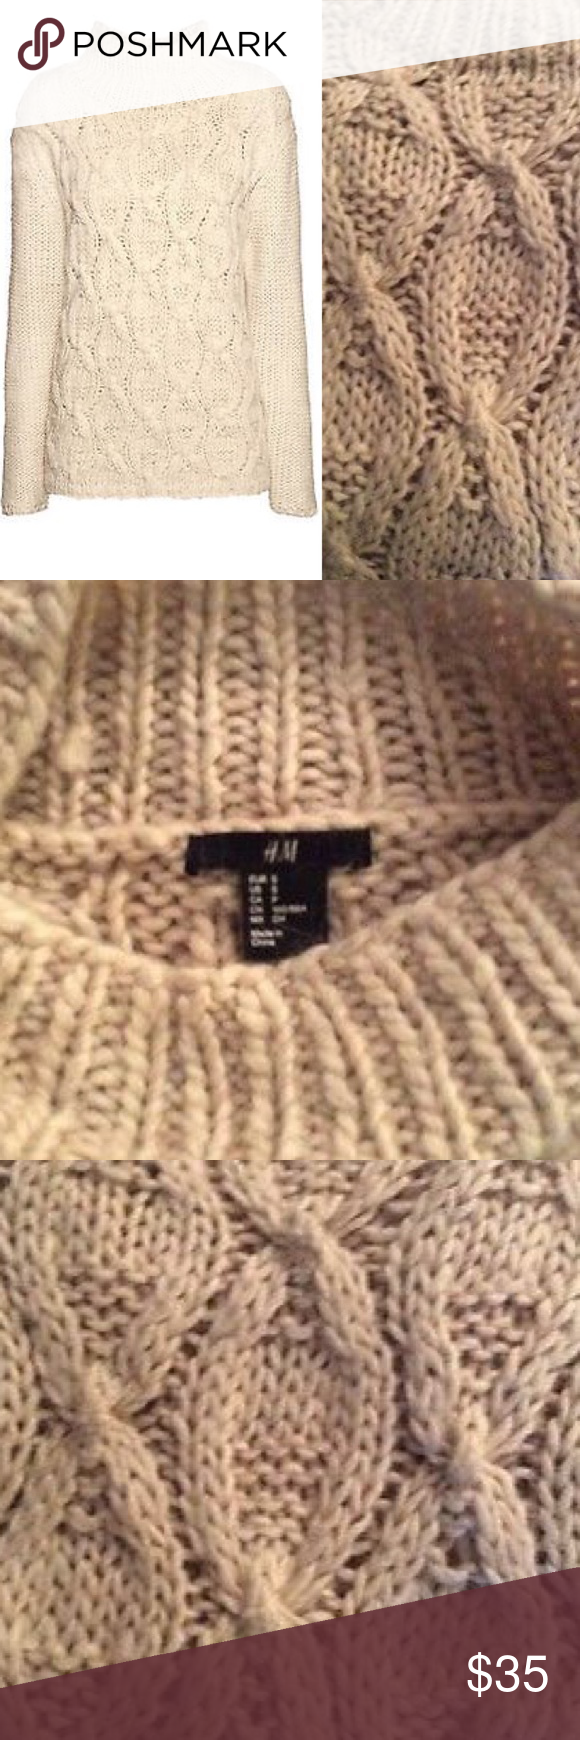 H&M Cable Knit Oversized Mock Turtleneck Sweater | Cable knitting ...